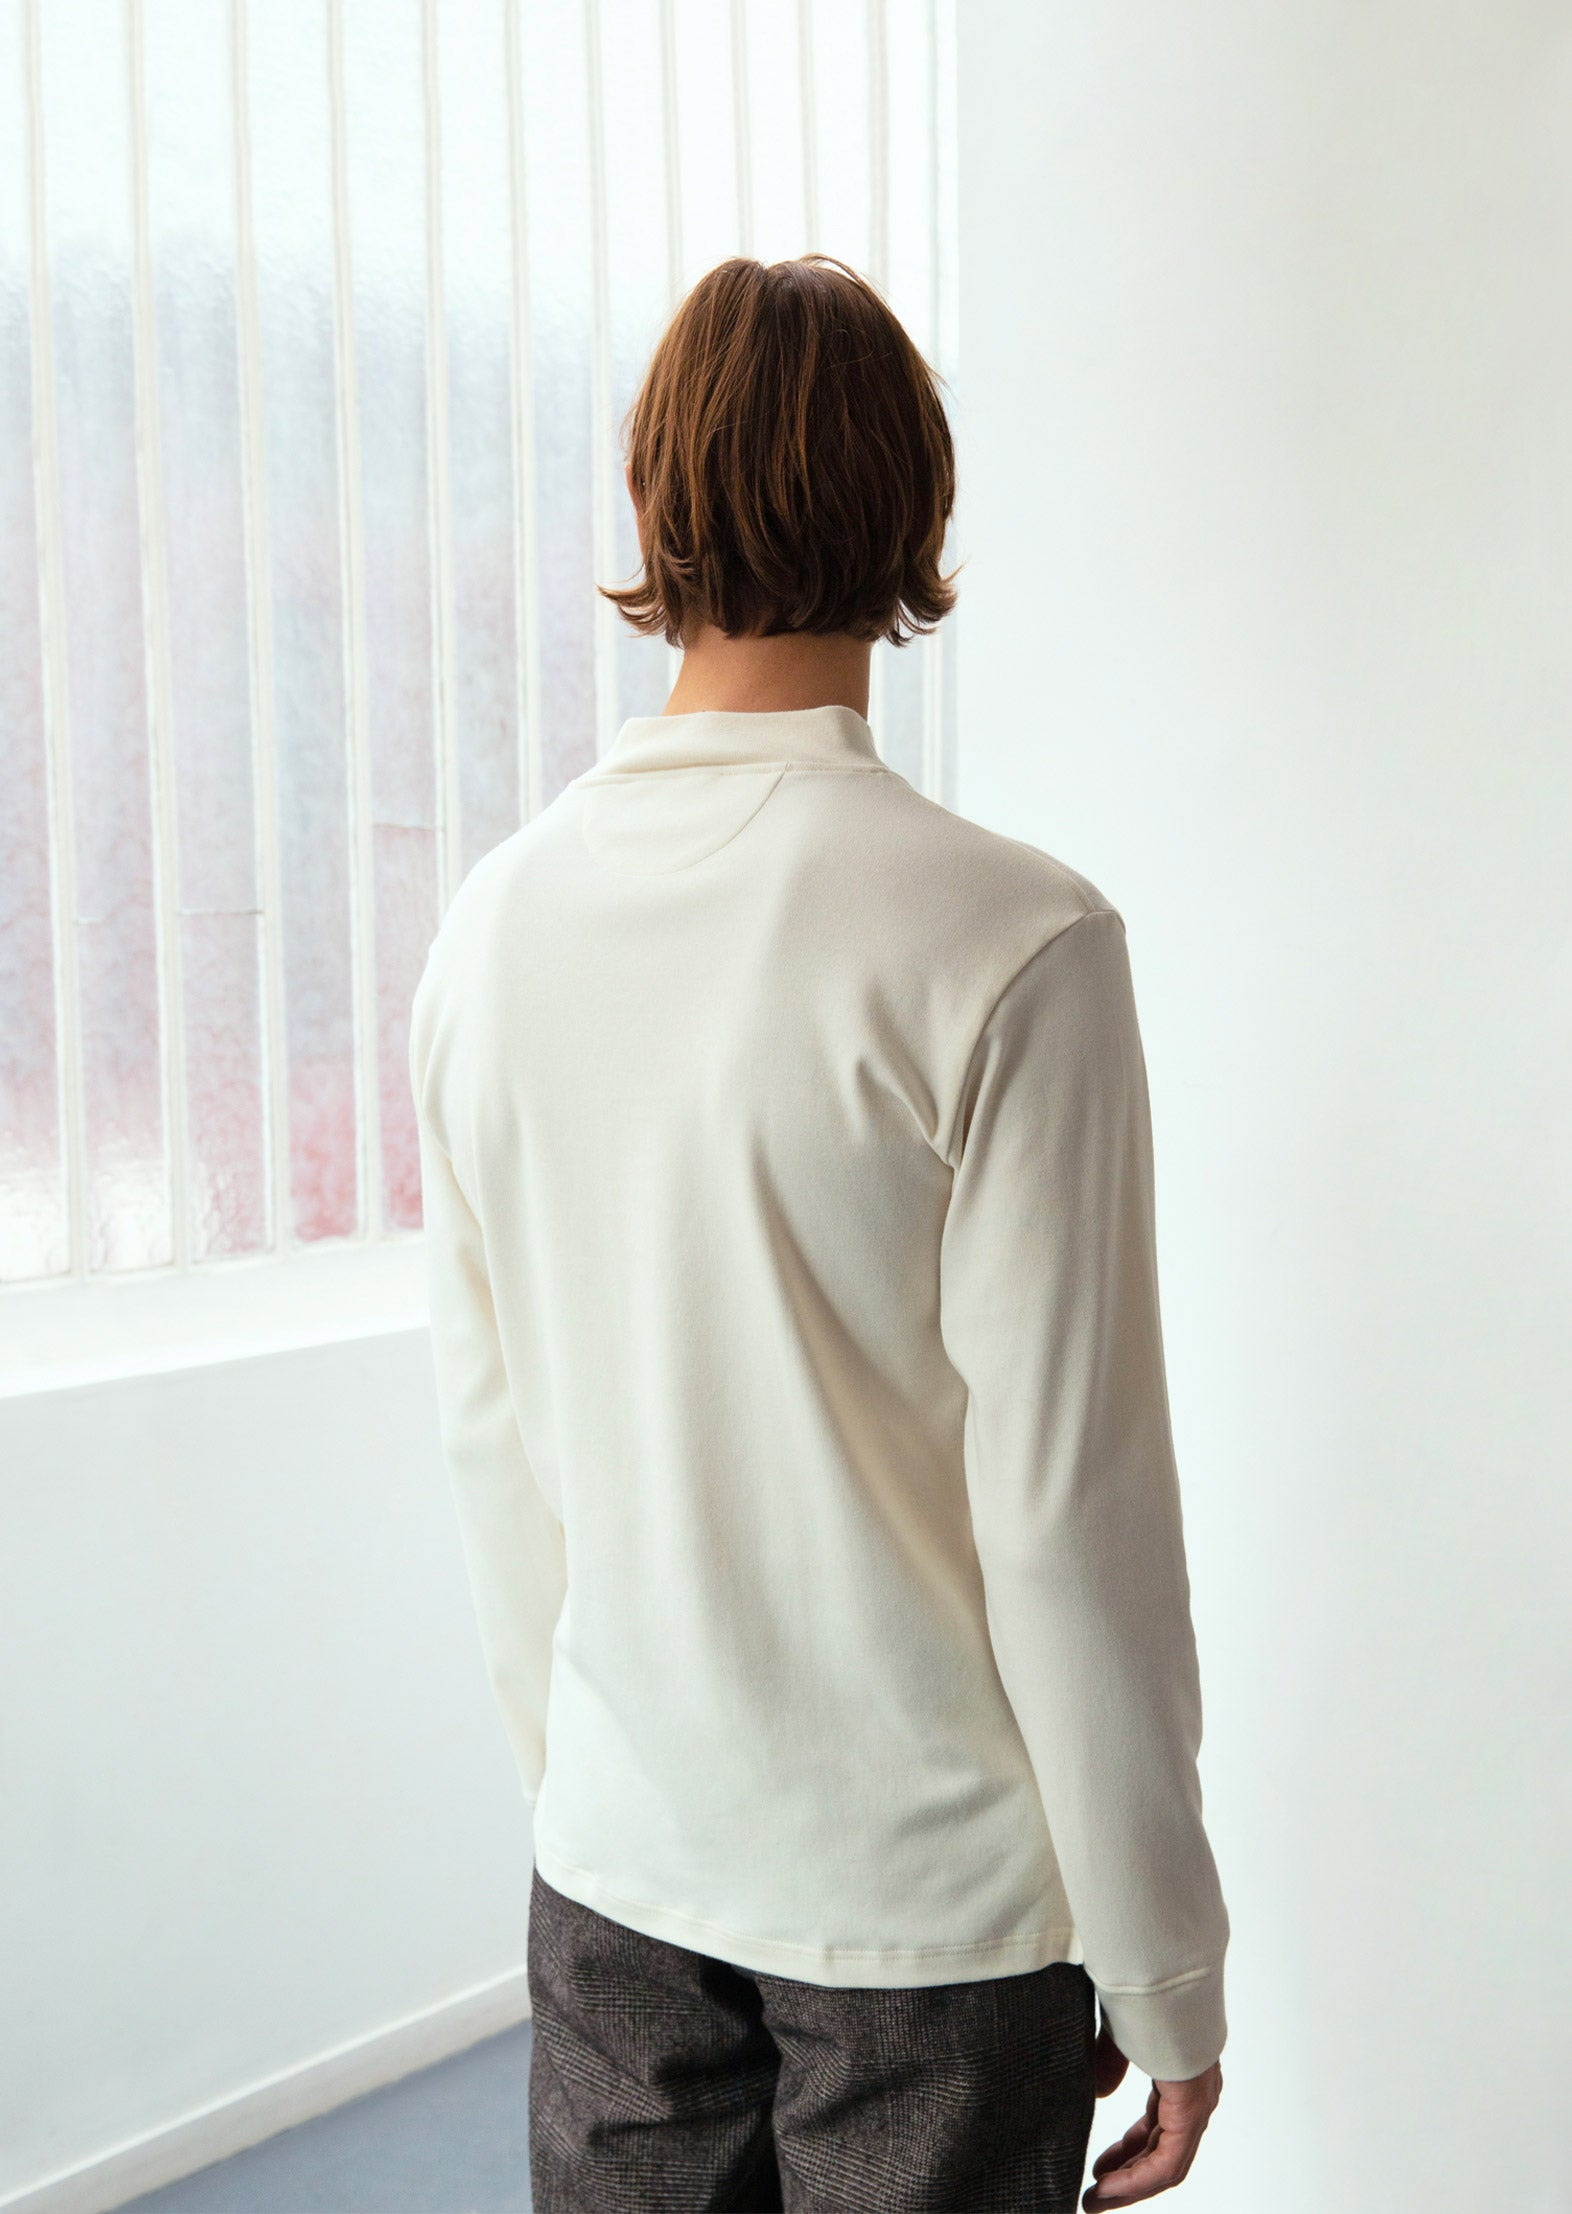 Mock neck t-shirt - Organic cotton interlock - Ecru - De Bonne Facture